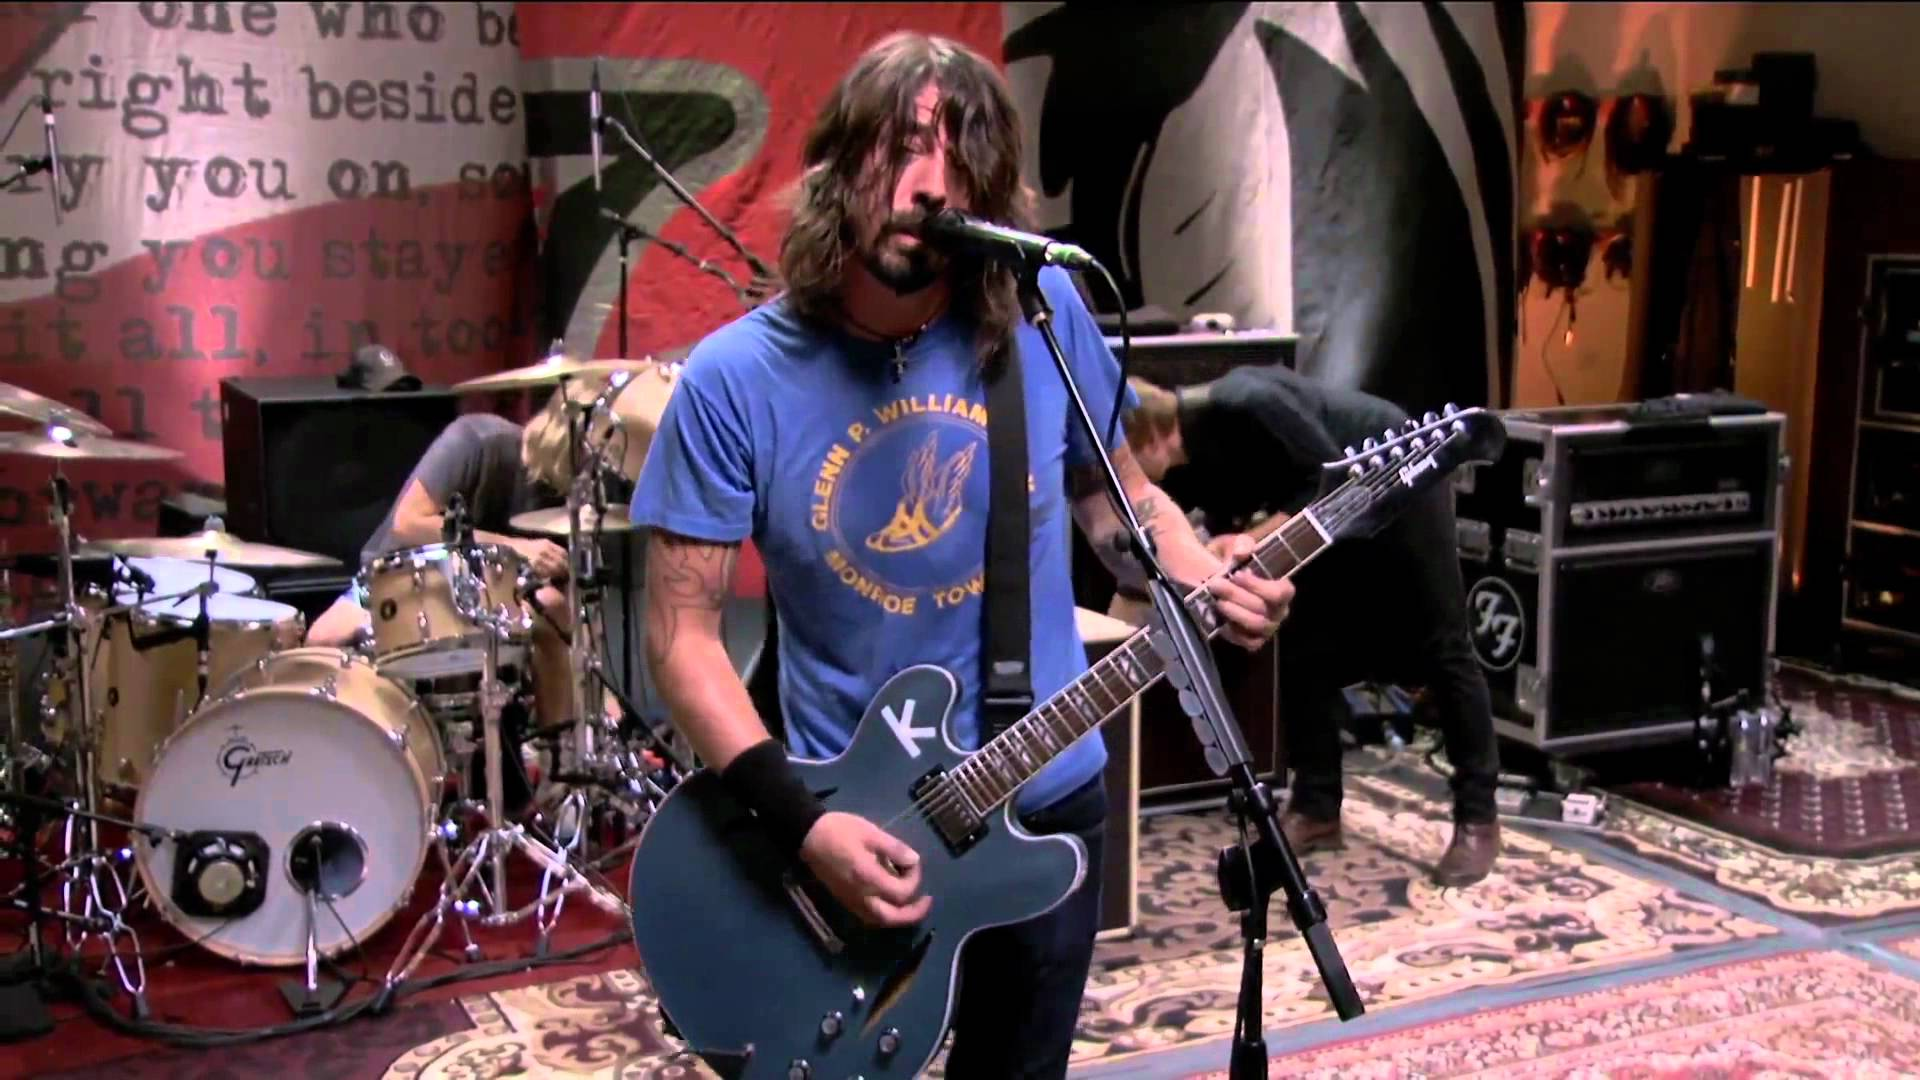 Foo fighters tour dates in Melbourne